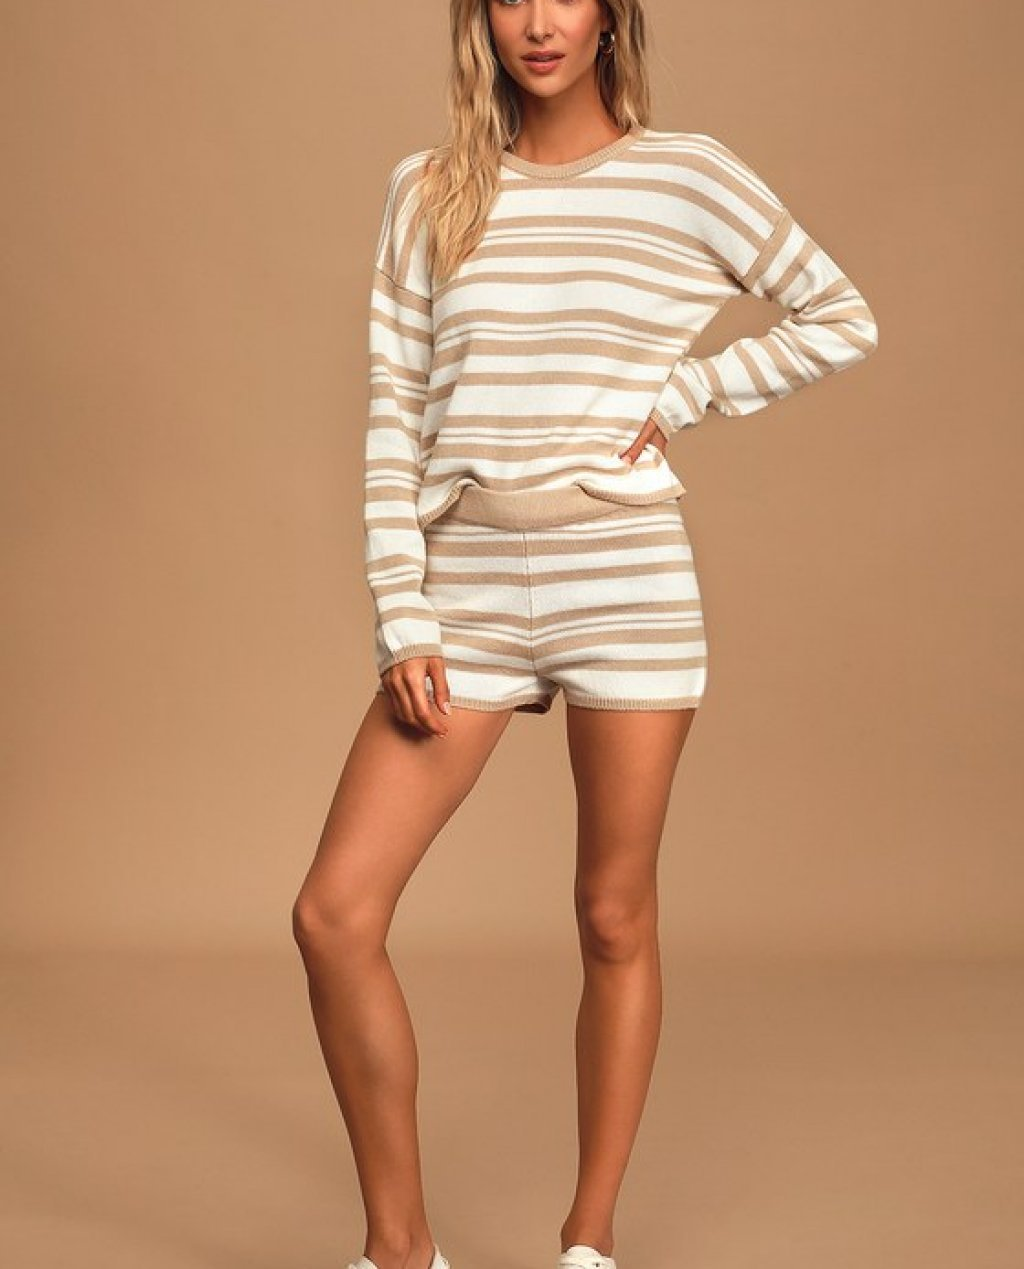 Comfy Cozy Tan and White Striped Knit Sweater Shorts